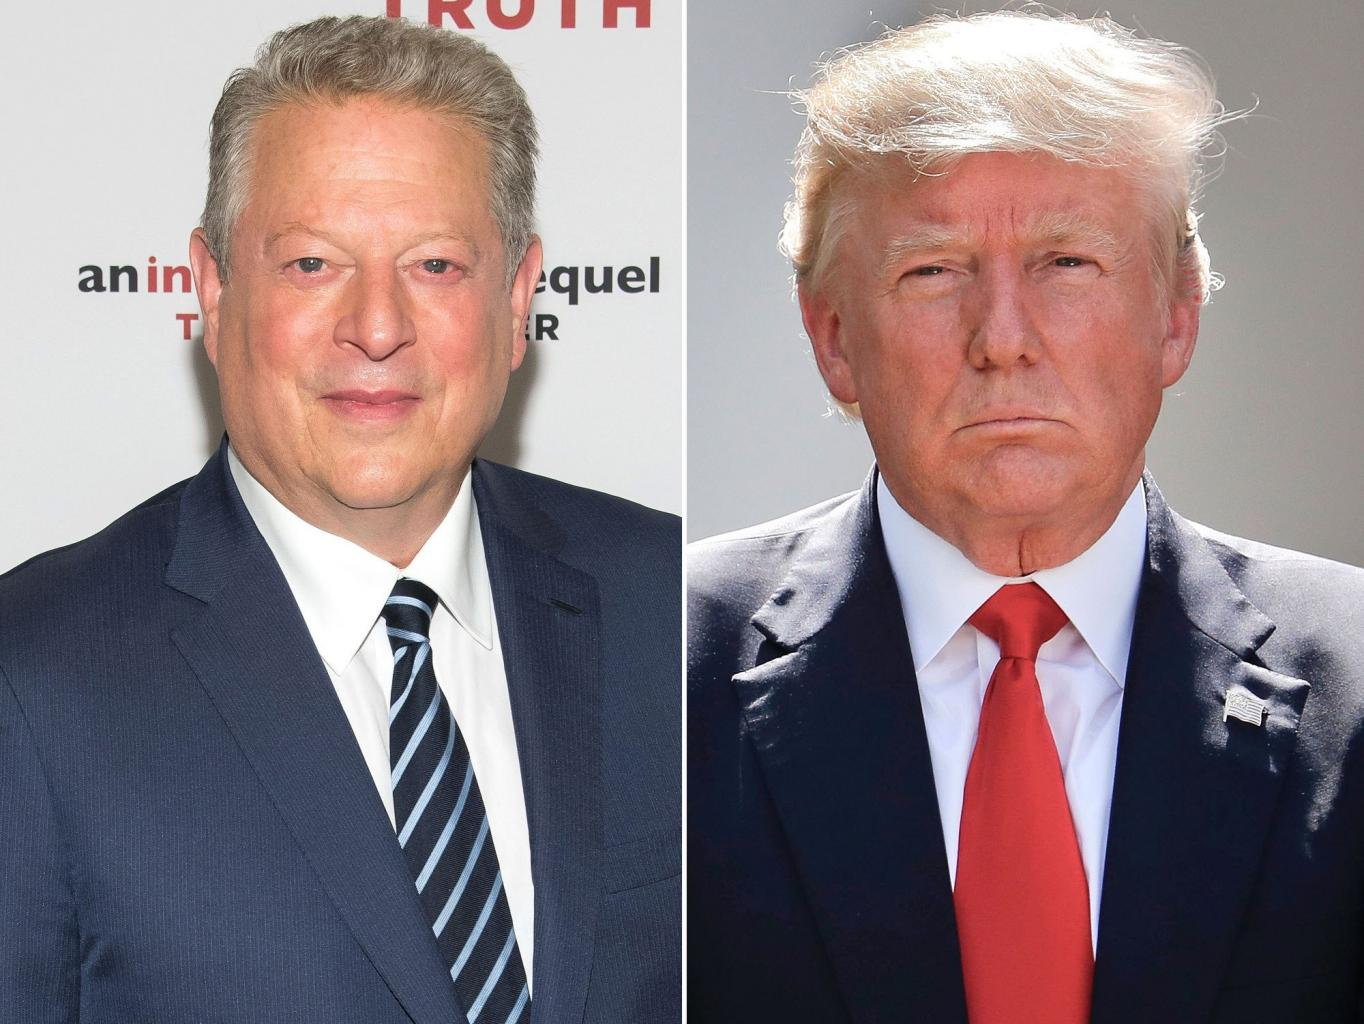 Al Gore Blasts Trump for 'Normalizing' Climate Change Denial in New Book: The 'Future of Humanity' Is at Risk